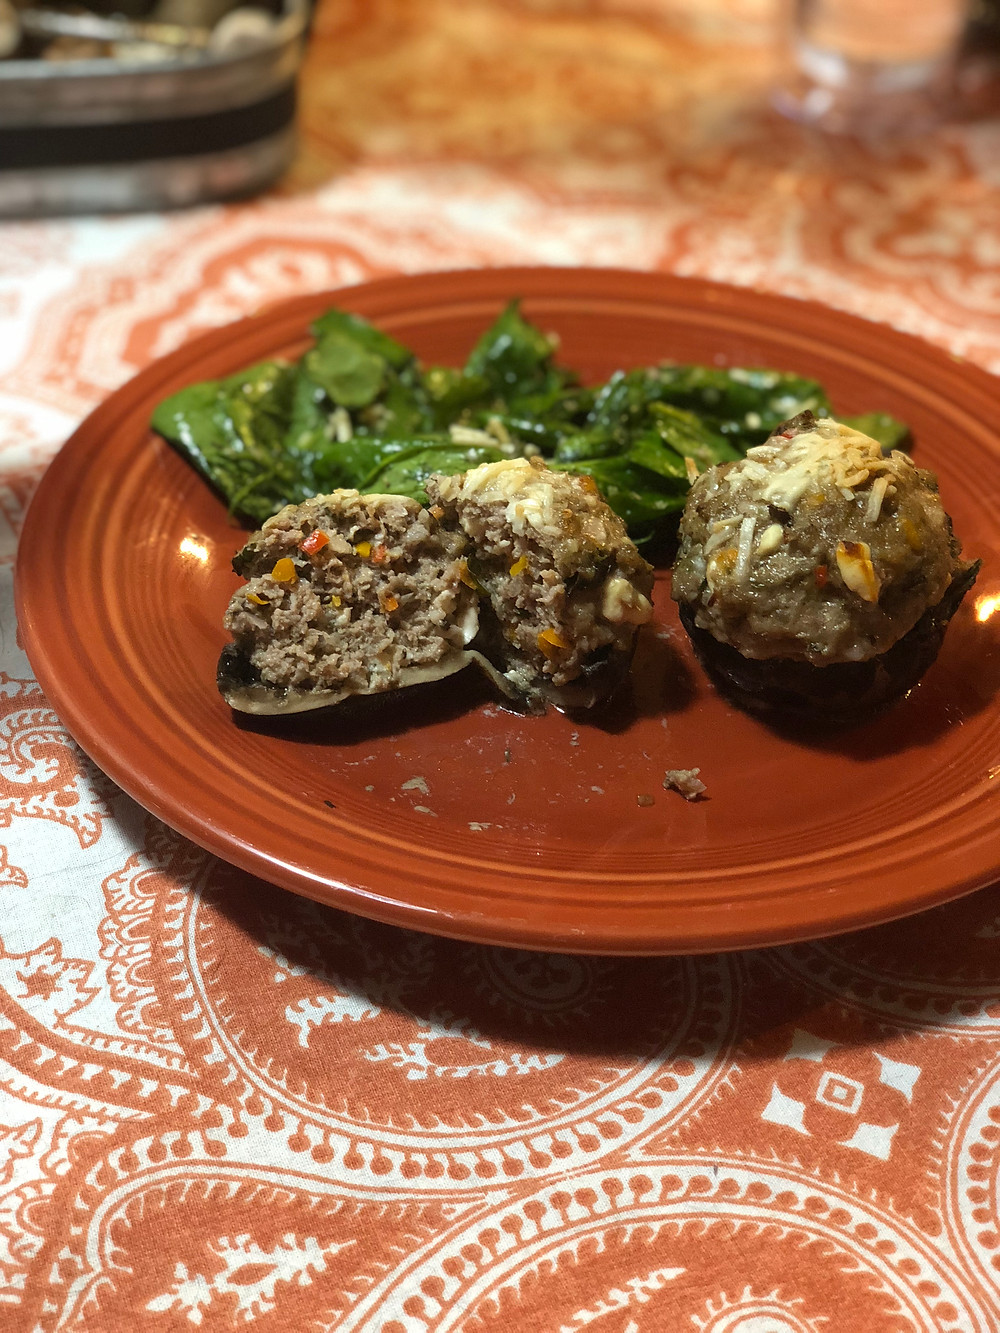 Lamb Stuffed Mushrooms with Simple Spinach Salad on fiesta ware plate